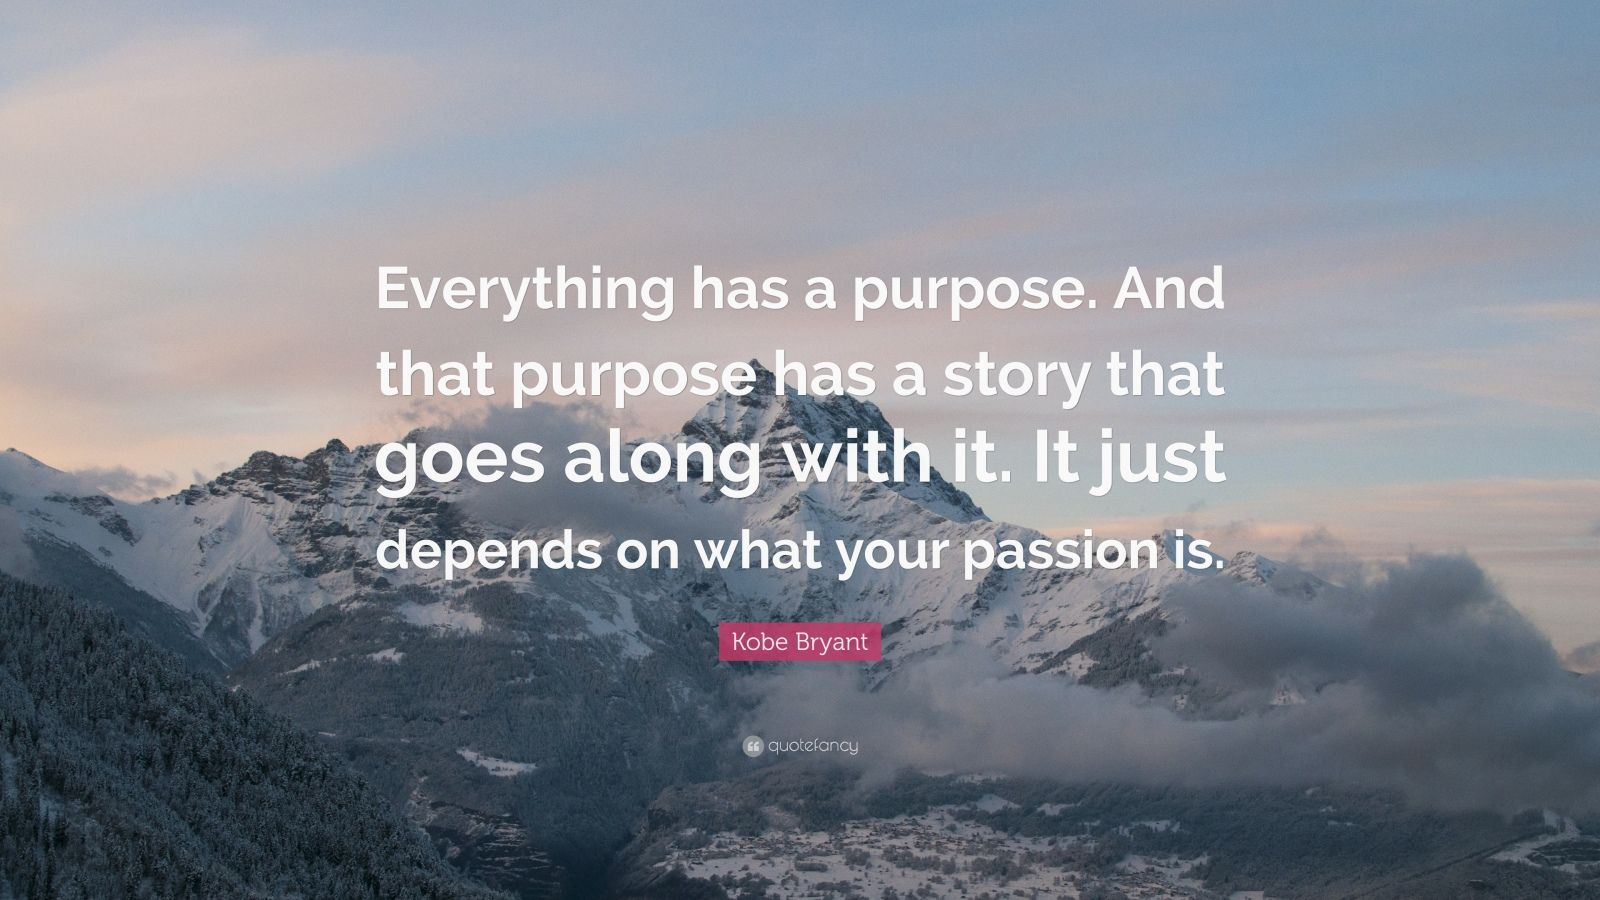 """Kobe Bryant Quote: """"Everything has a purpose. And that purpose has a story that goes along with it. It just depends on what your passion is."""""""